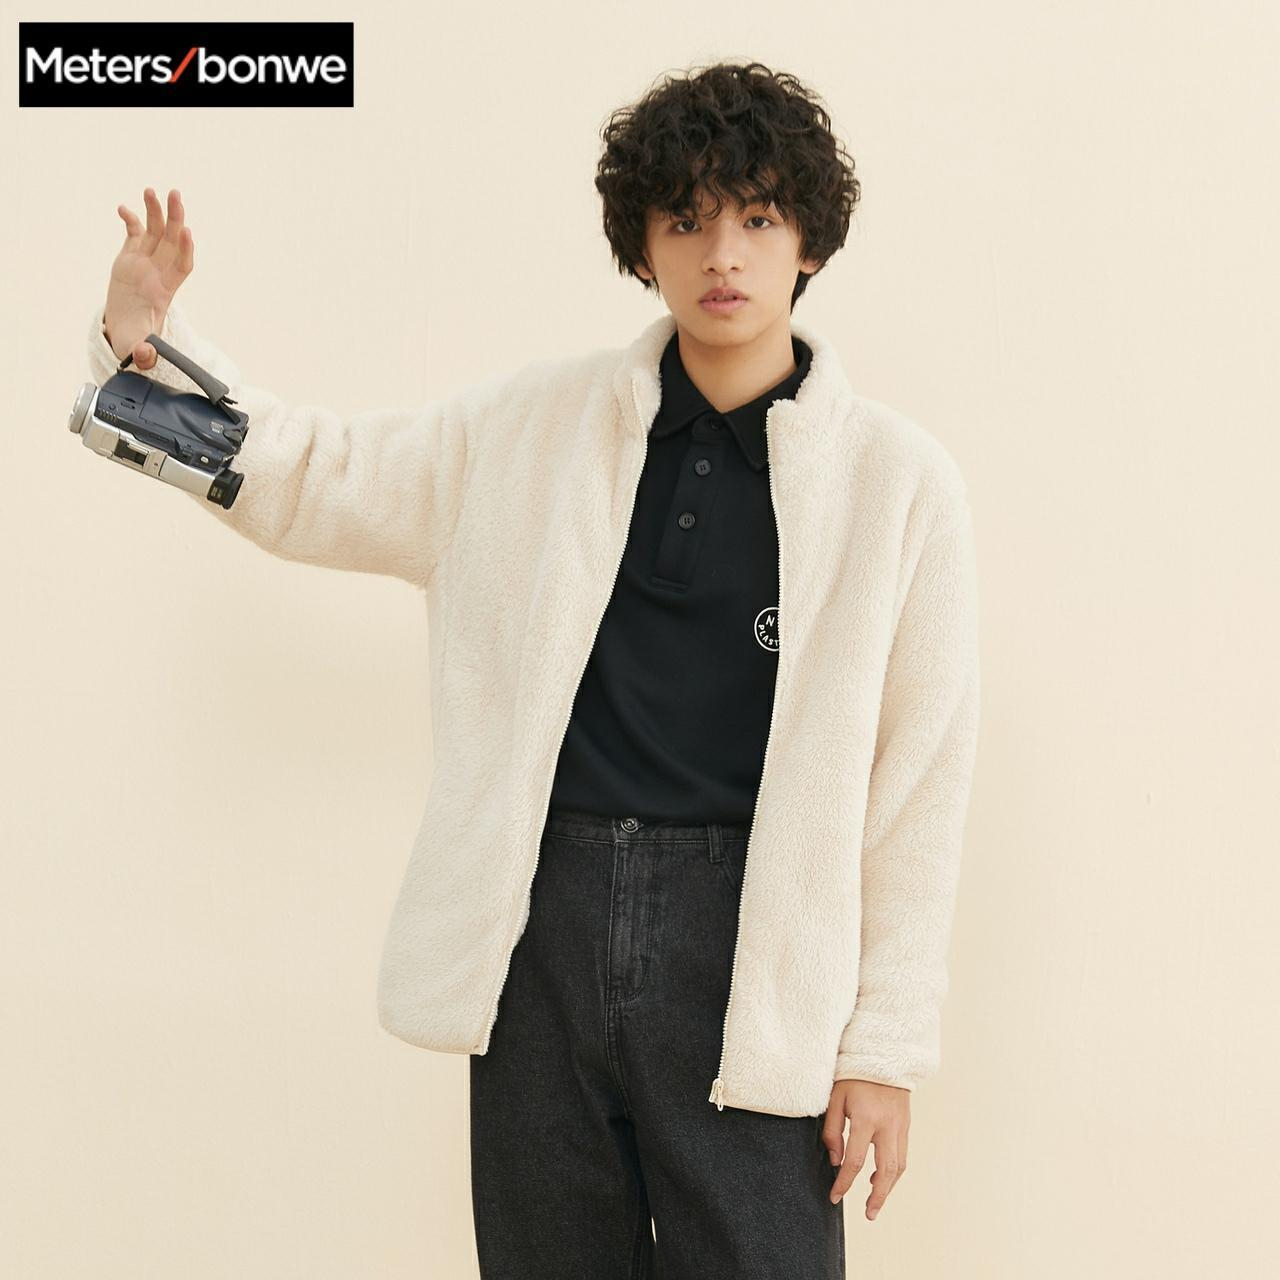 Metersbonwe stand-up collar jacket male plush Cotton Coats new winter couple polar fleece female Padded Coats 224494 201028